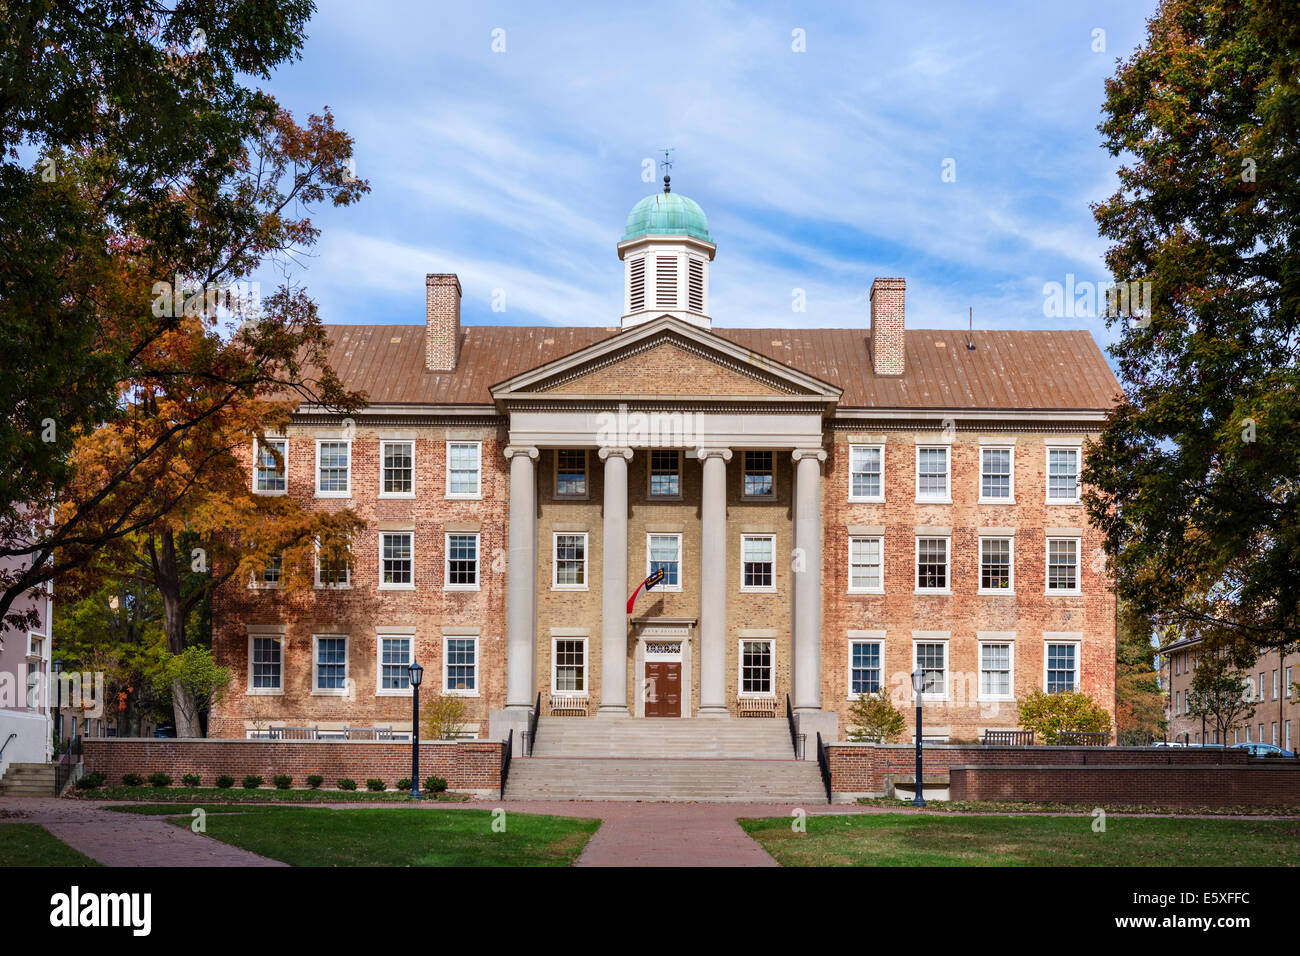 The South Building at the University of North Carolina at Chapel Hil, Chapel Hill, North Carolina, USA - Stock Image